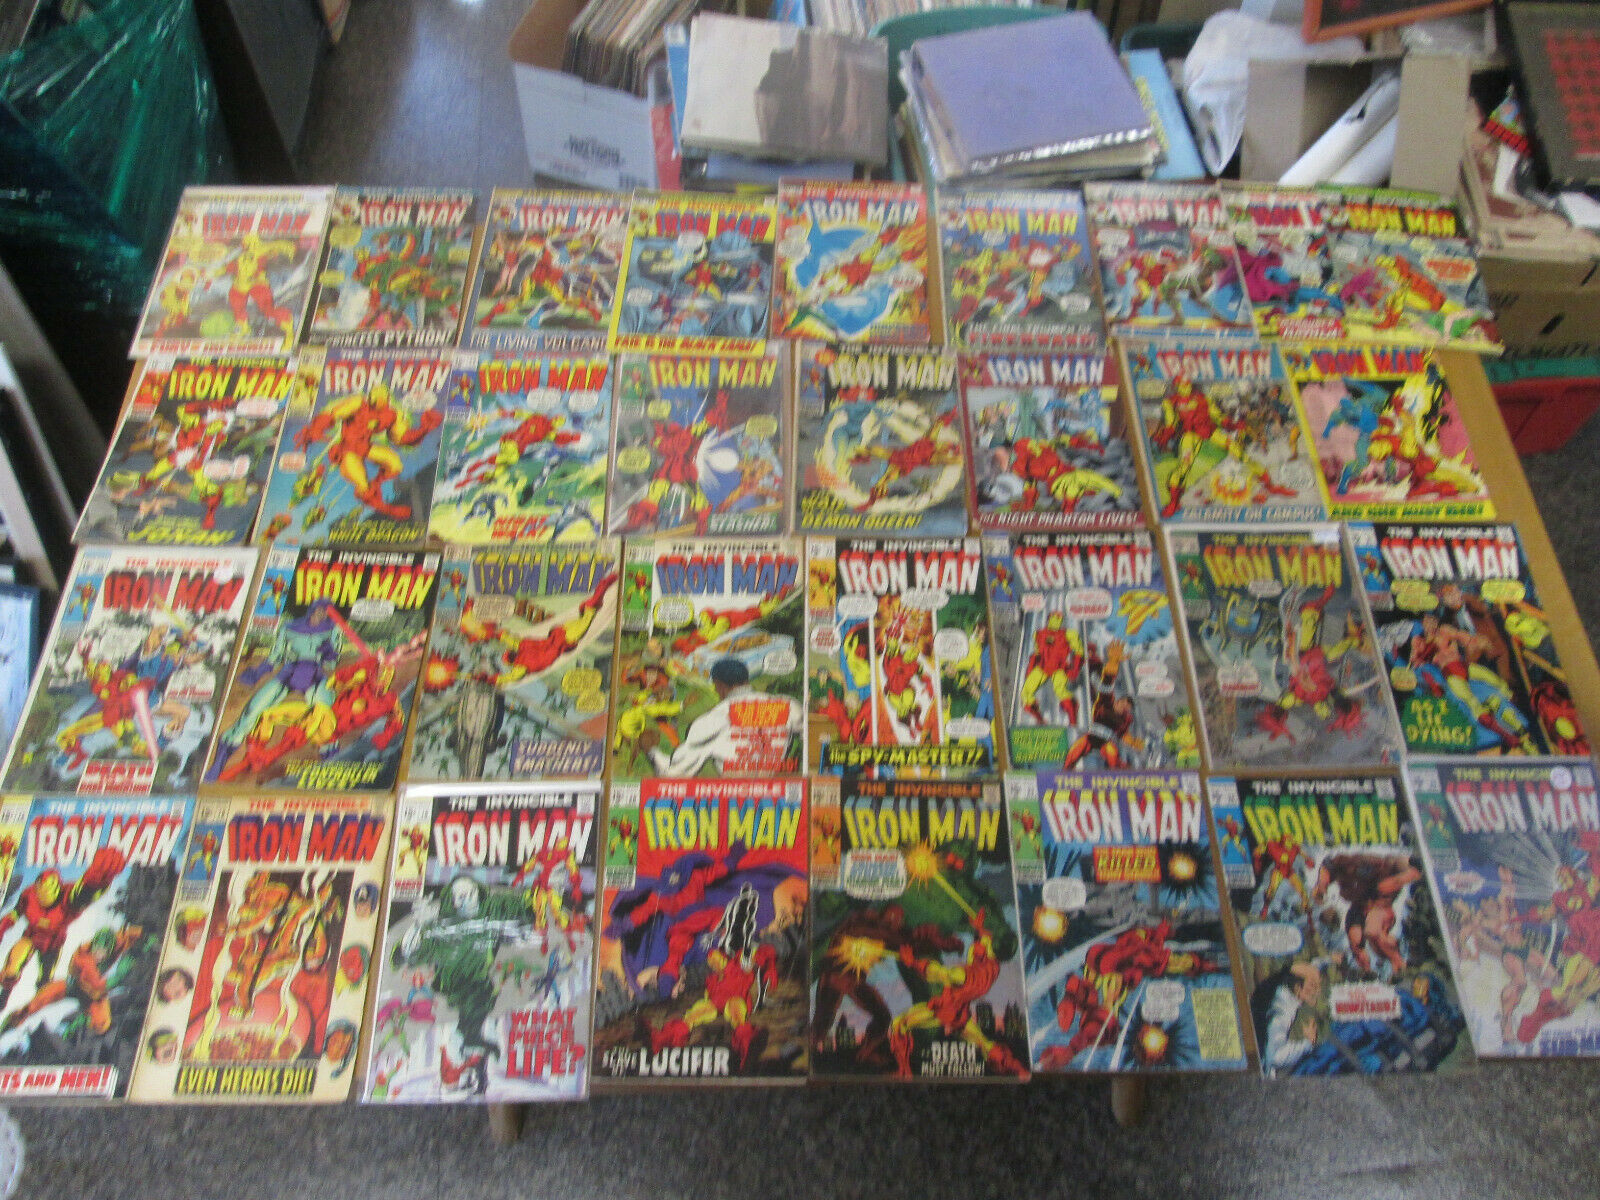 33 LOT OF THE INVINCIBLE IRON MAN #16#18#19#20#22#23#24#25#26#28#31#32#33+MORE